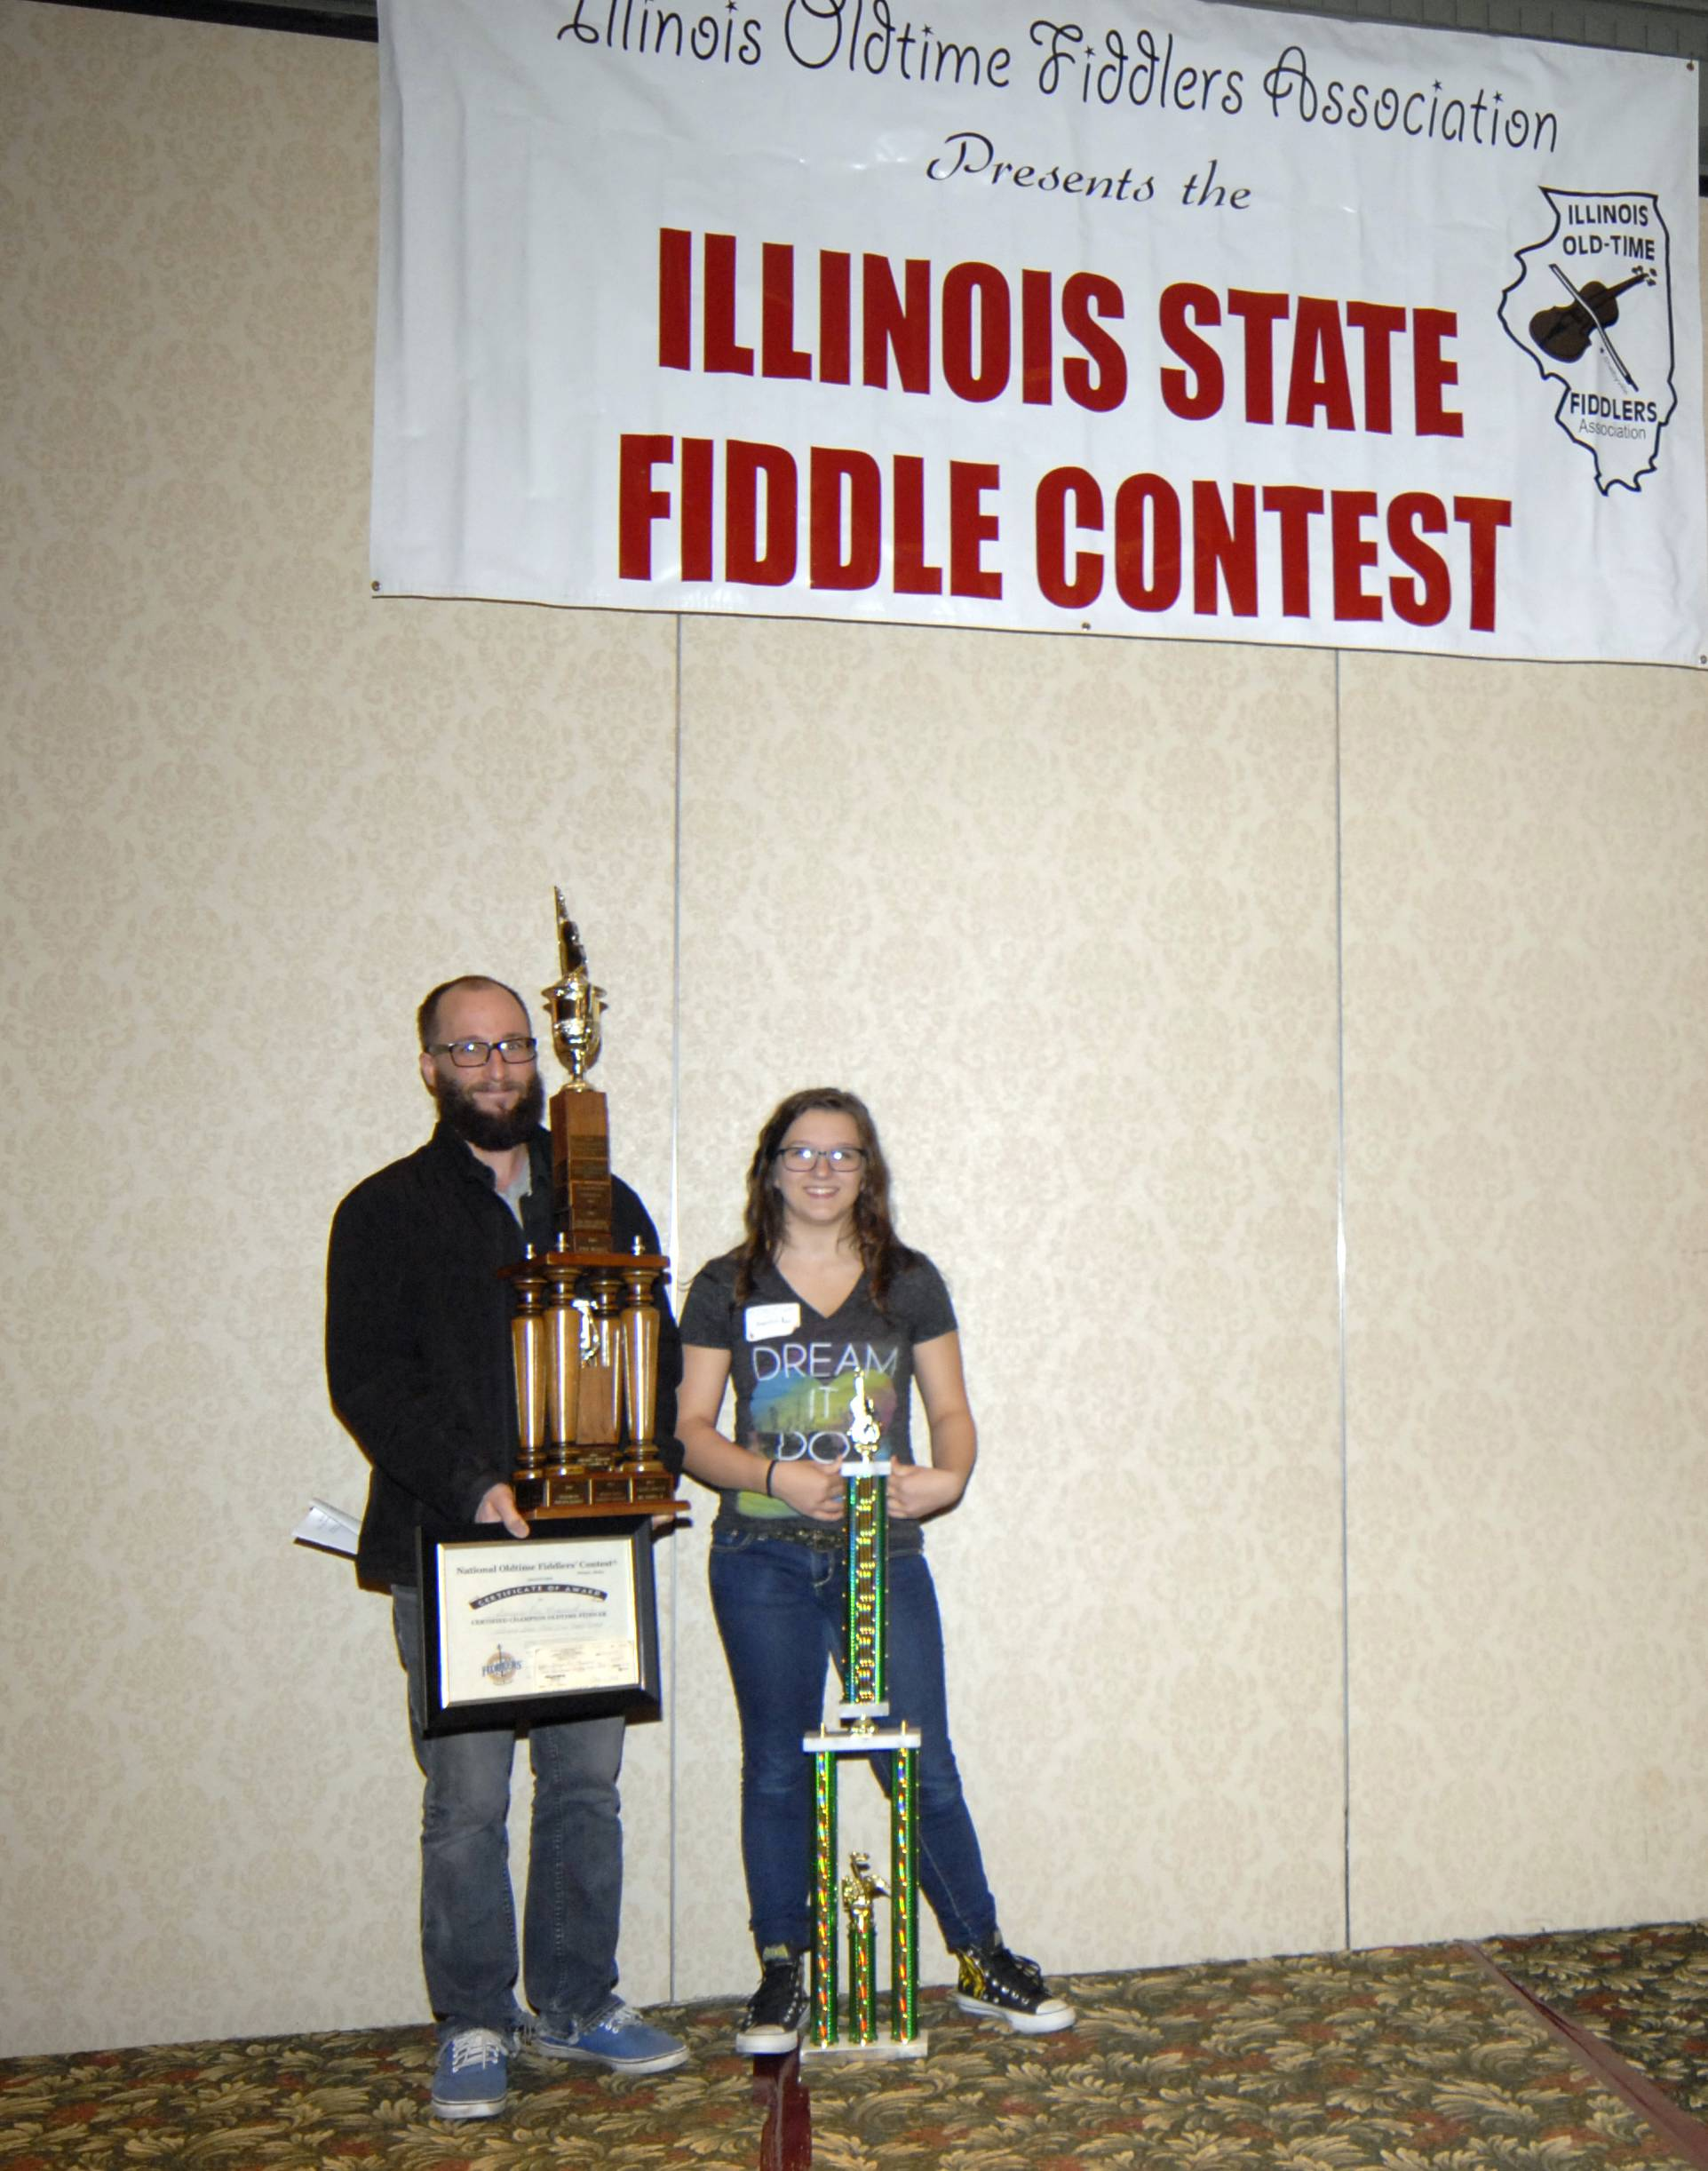 "Fiddle teacher Shawn Drake (L) helps hold Georgia Rae Mussared's (R) trophies and awards she won at the Illinois State Old Time Fiddler's Contest in Effingham, IL, where she was named the 2013 Grand Champion. The win sends her to the Grand National Old Time Fiddlers Contest in Weiser, Idaho in June. The ""Weiser"" is one of the most prestigious flddle contests in the nation."